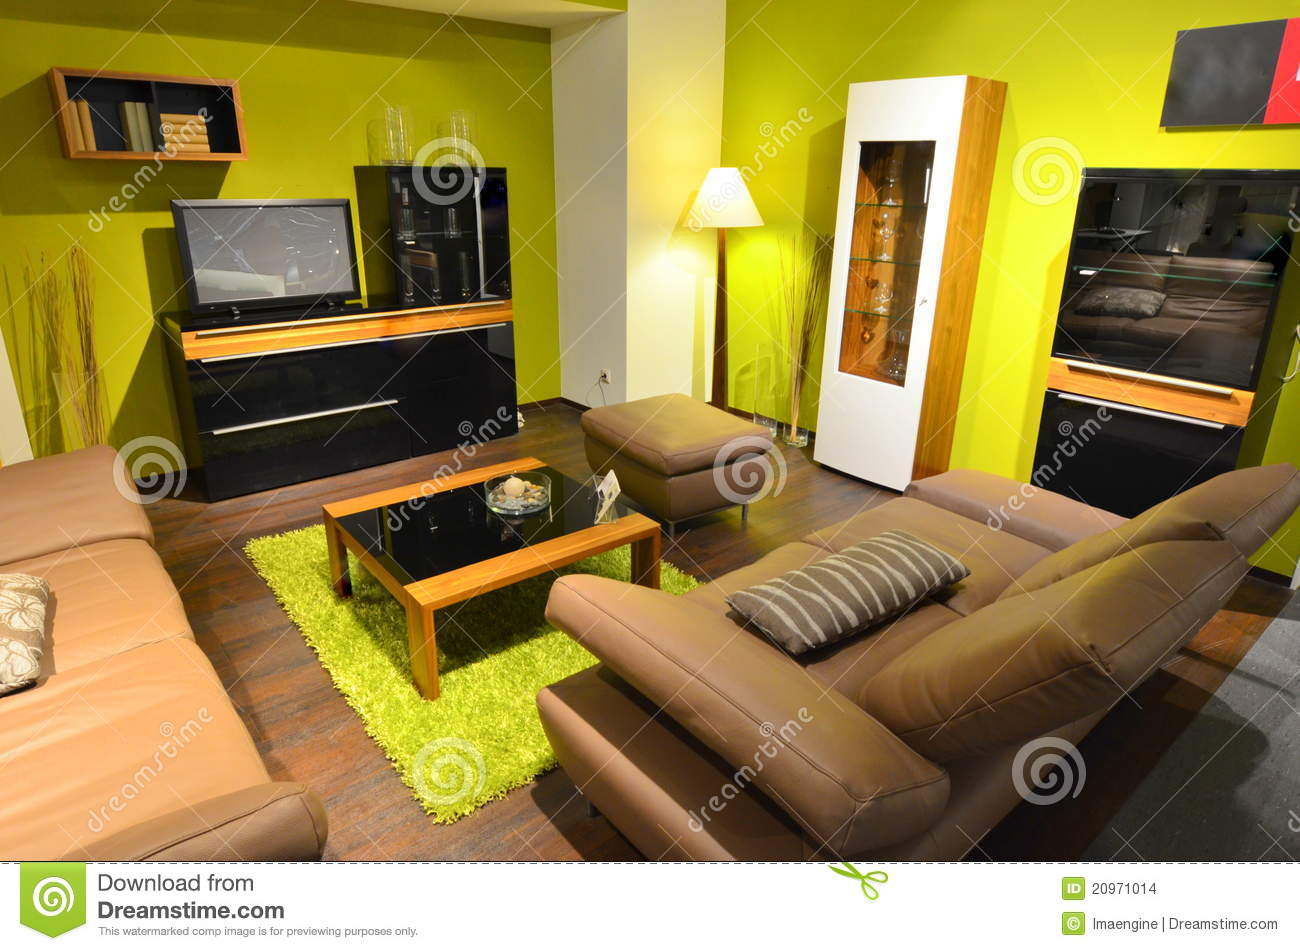 Studio apartment living room area stock images image for The family room design studio